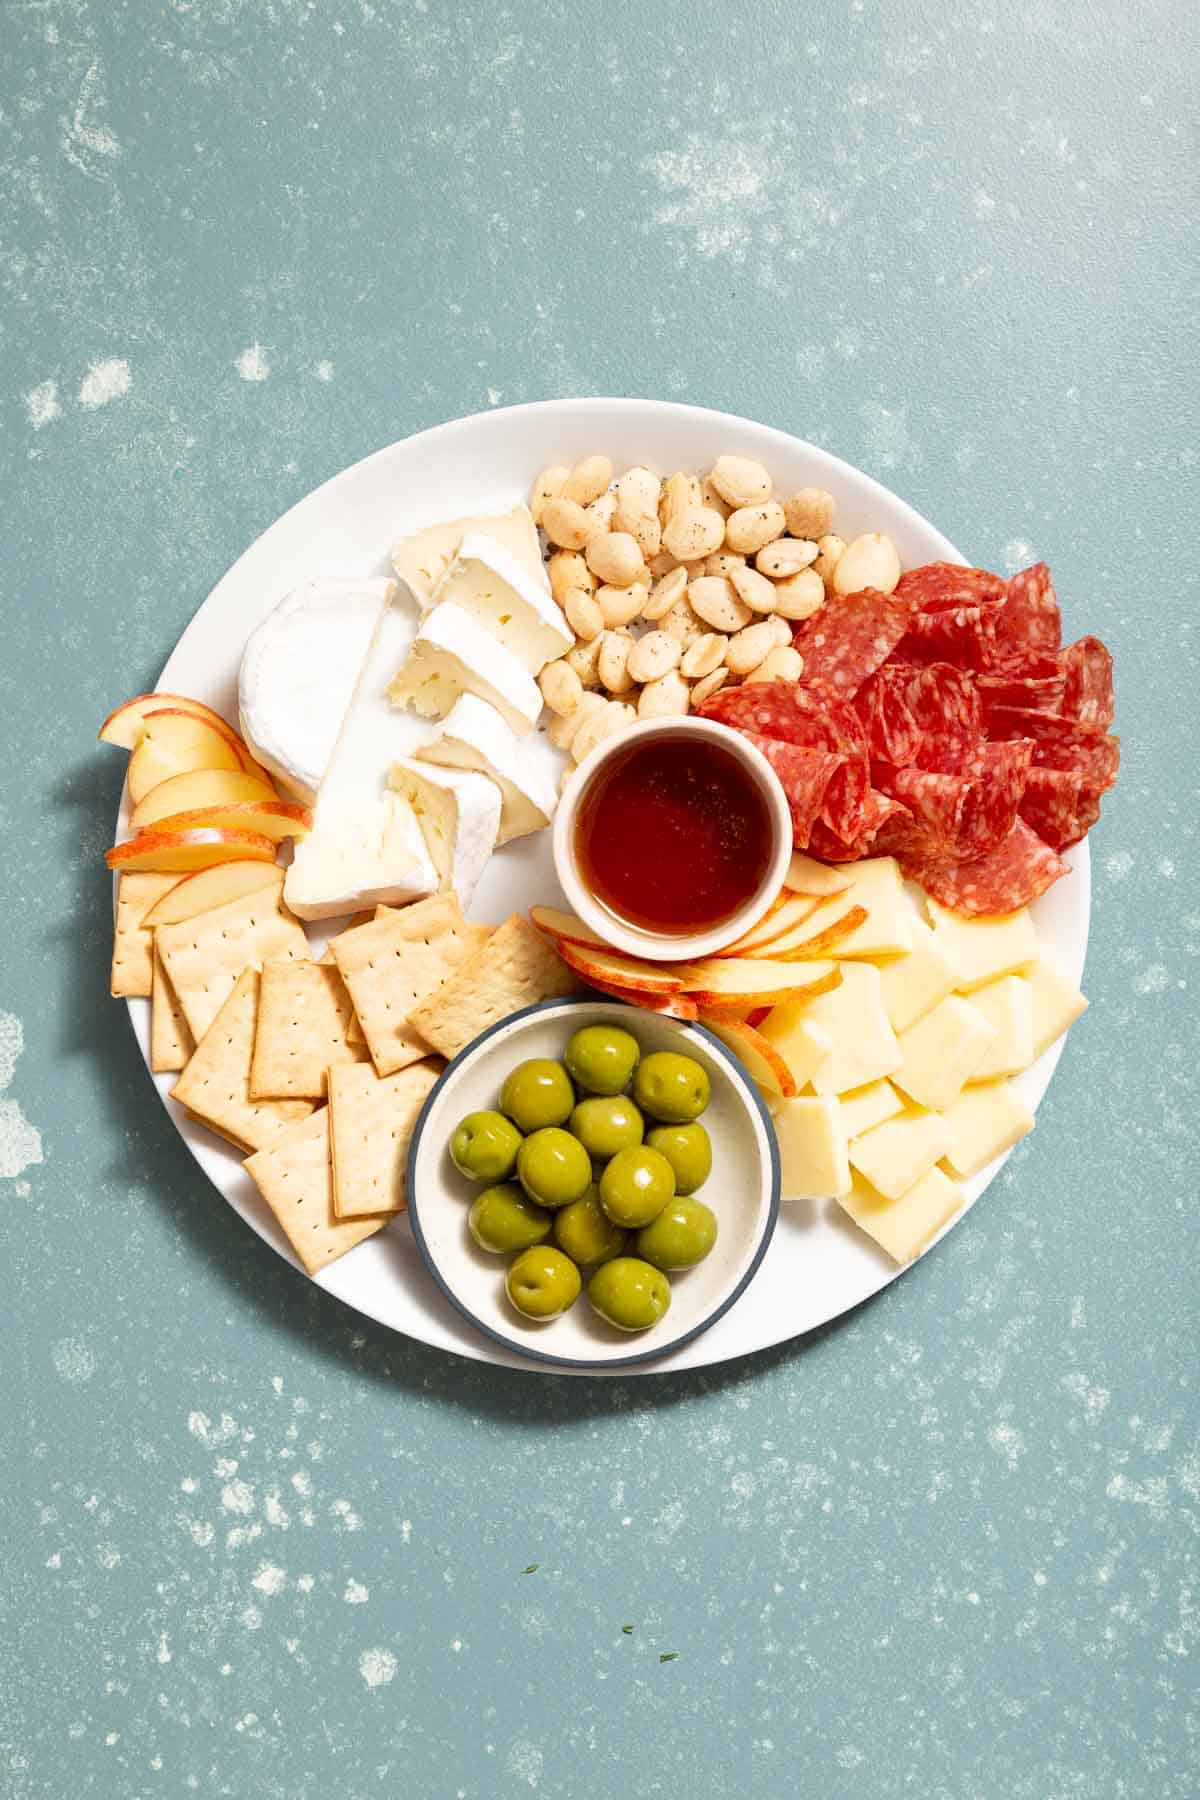 White plate with cheese, meat, crackers, and green olives in a small bowl